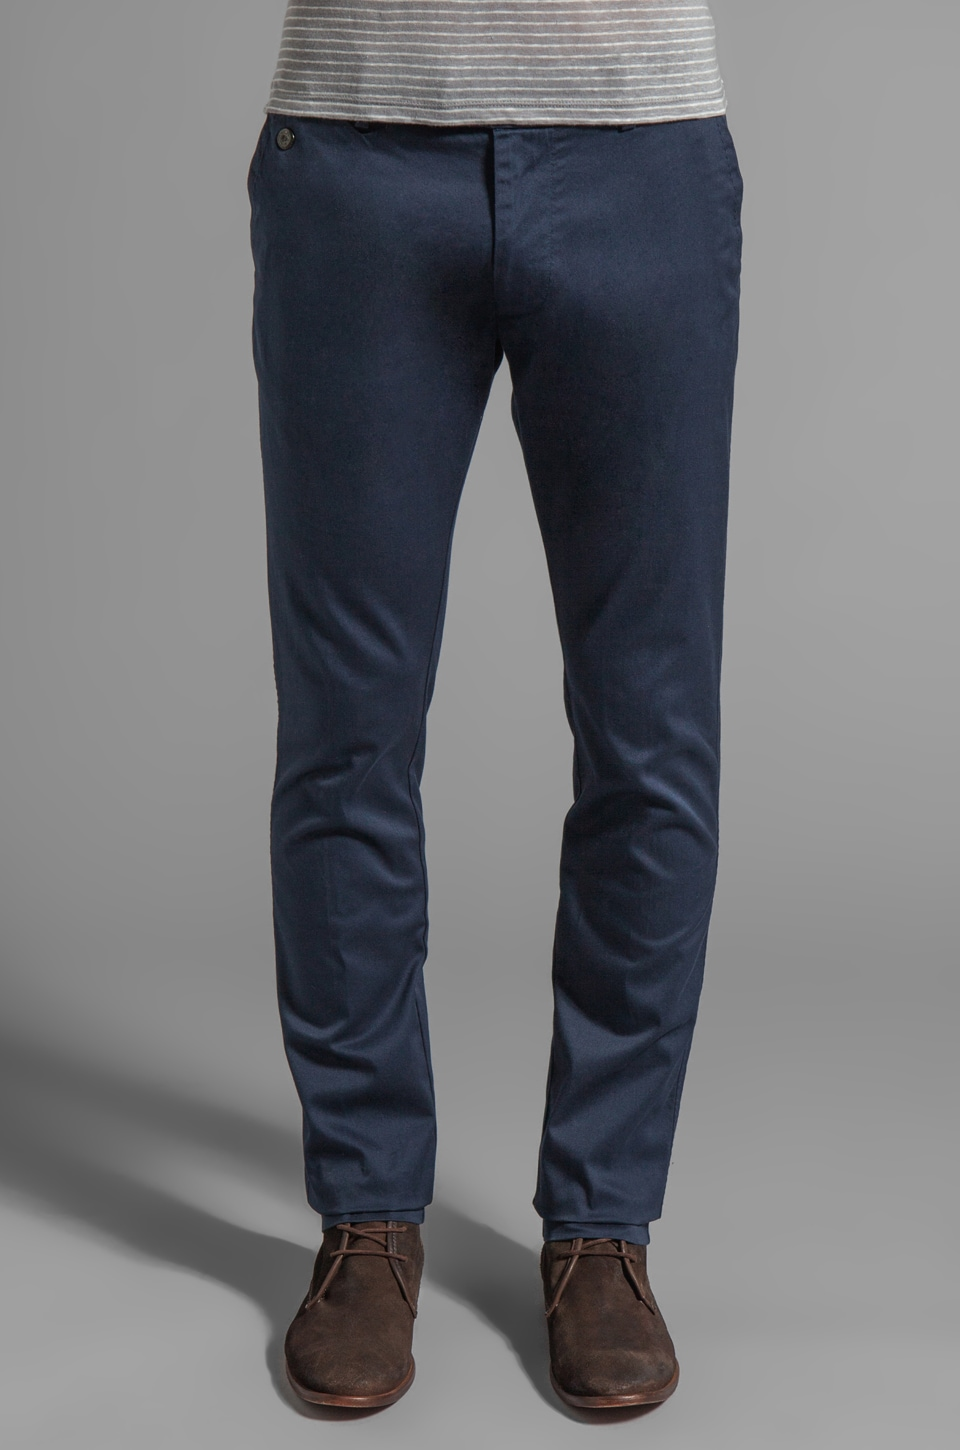 Diesel Chi-Tight Pants in Midnight Stripe